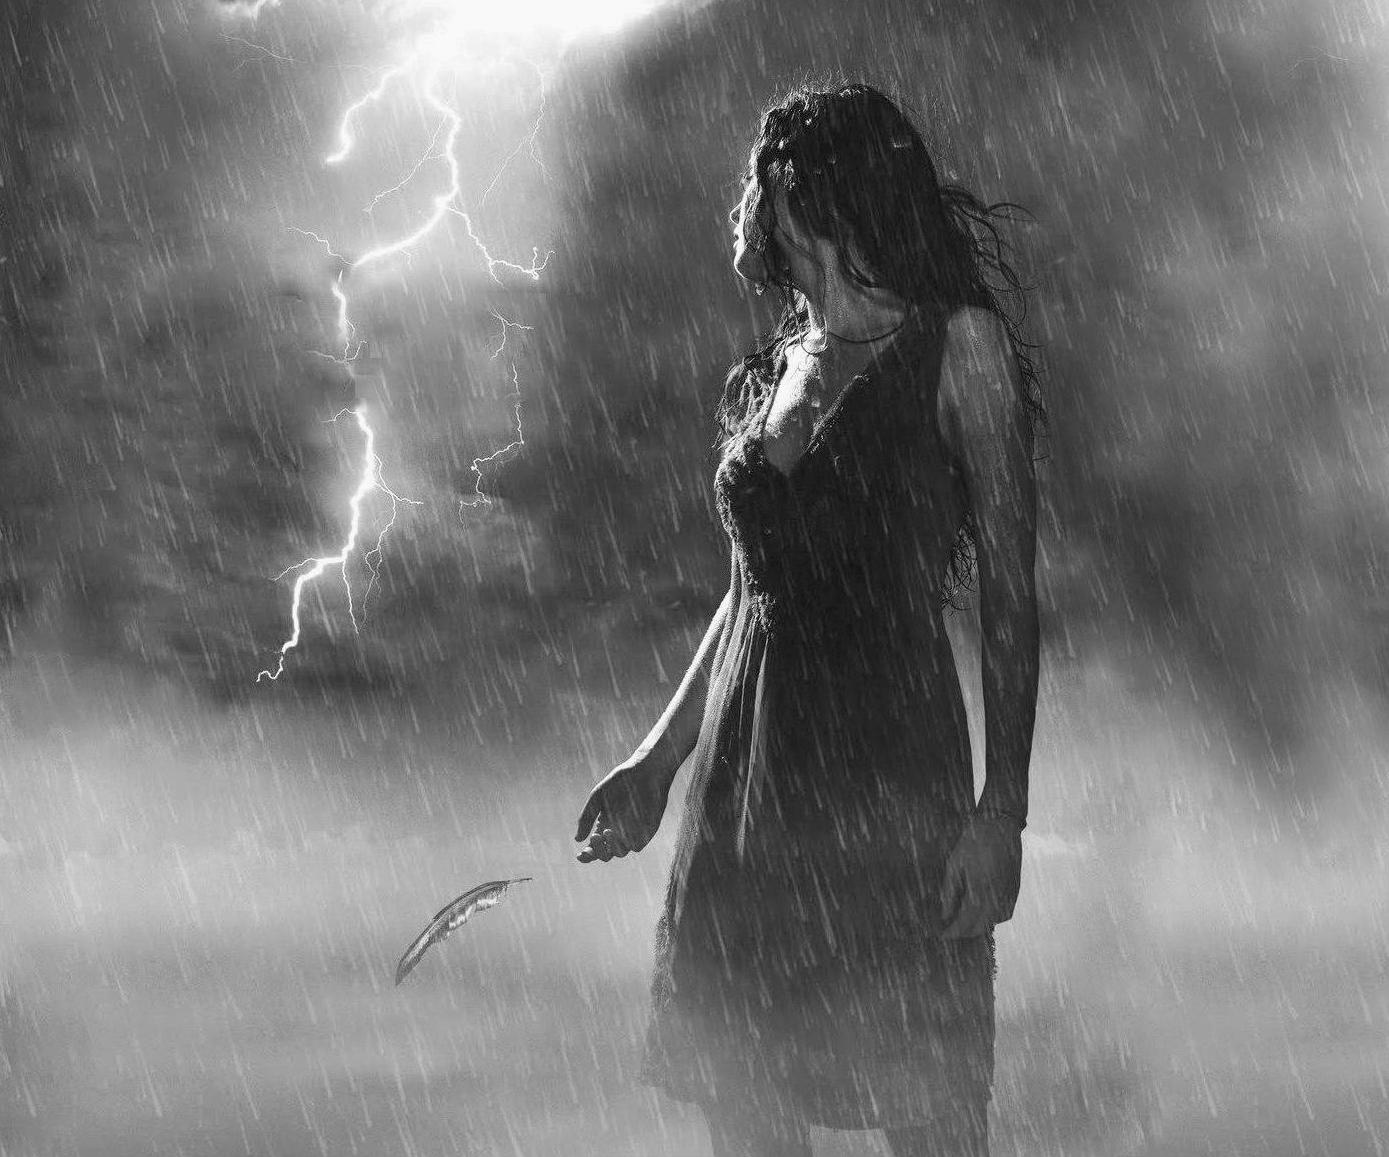 remnants pinterest com gray_lost_in_storm_sad_woman_rain_people_hd-wallpaper-1611547